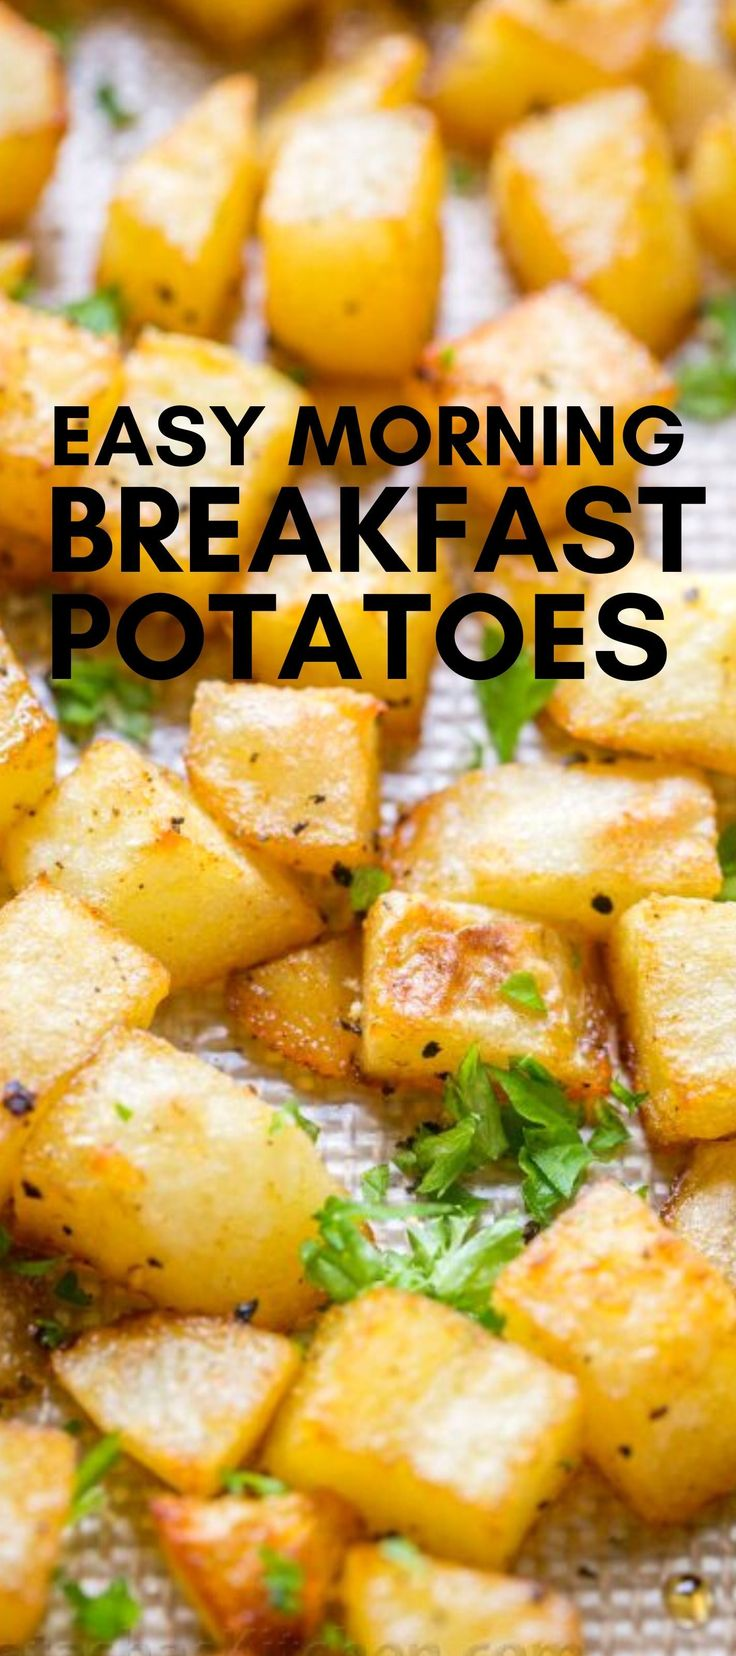 Mar 23, 2020 – Easy Breakfast Potatoes – Perfect large crowd breakfast potatoes that make holiday breakfasts so special …